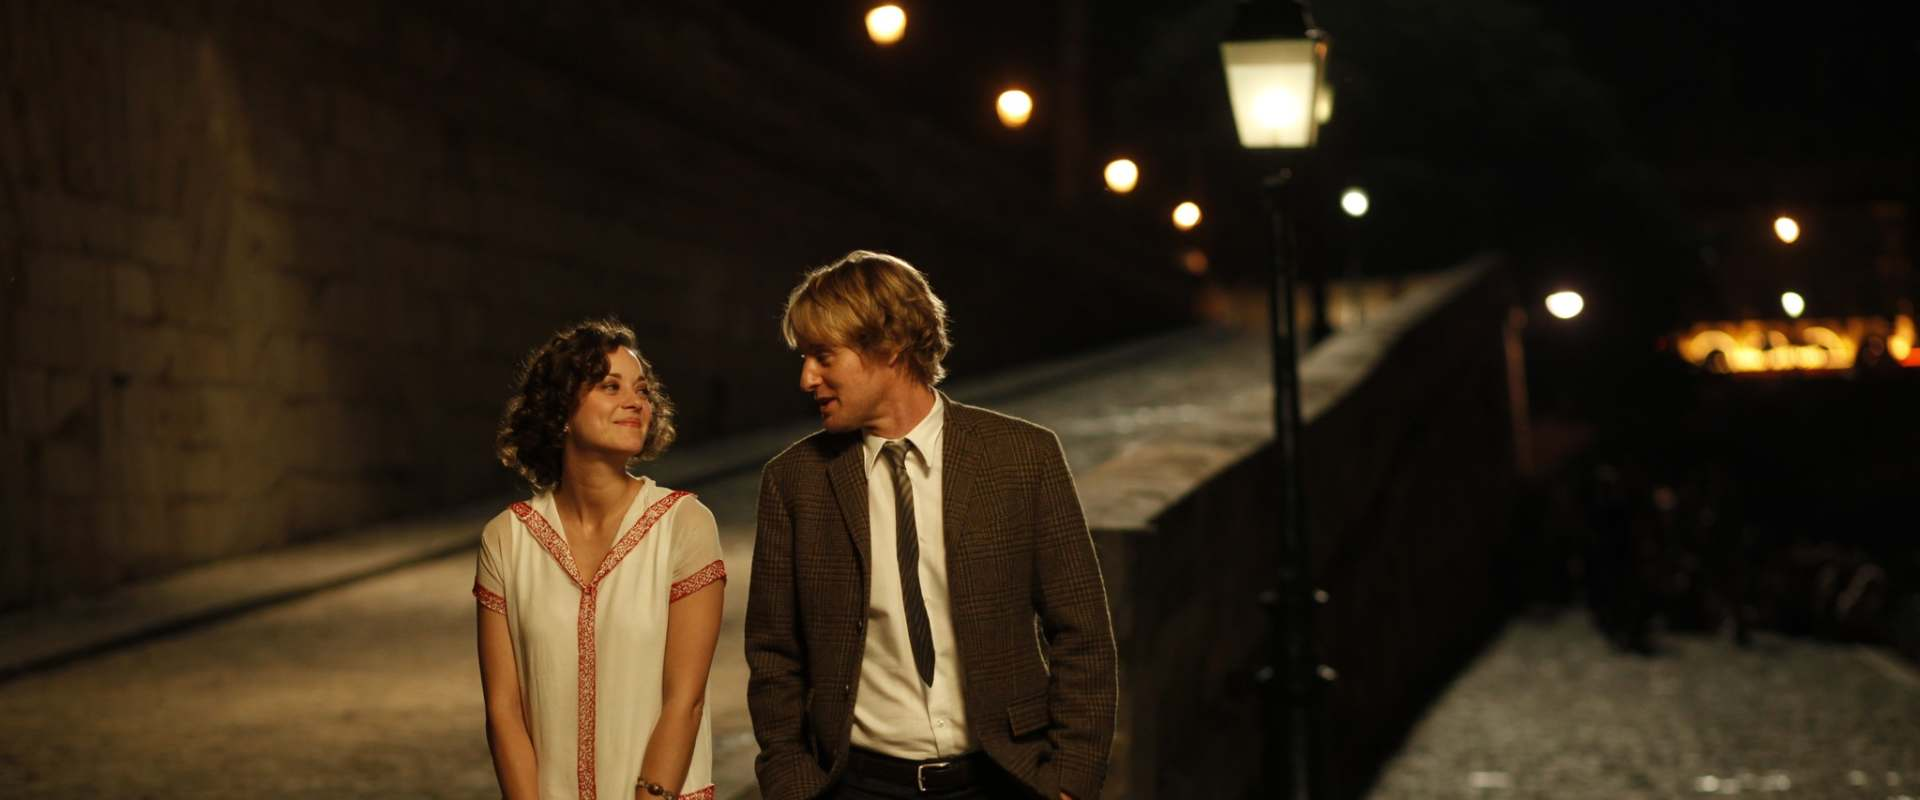 watch midnight in paris on netflix today netflixmovies com